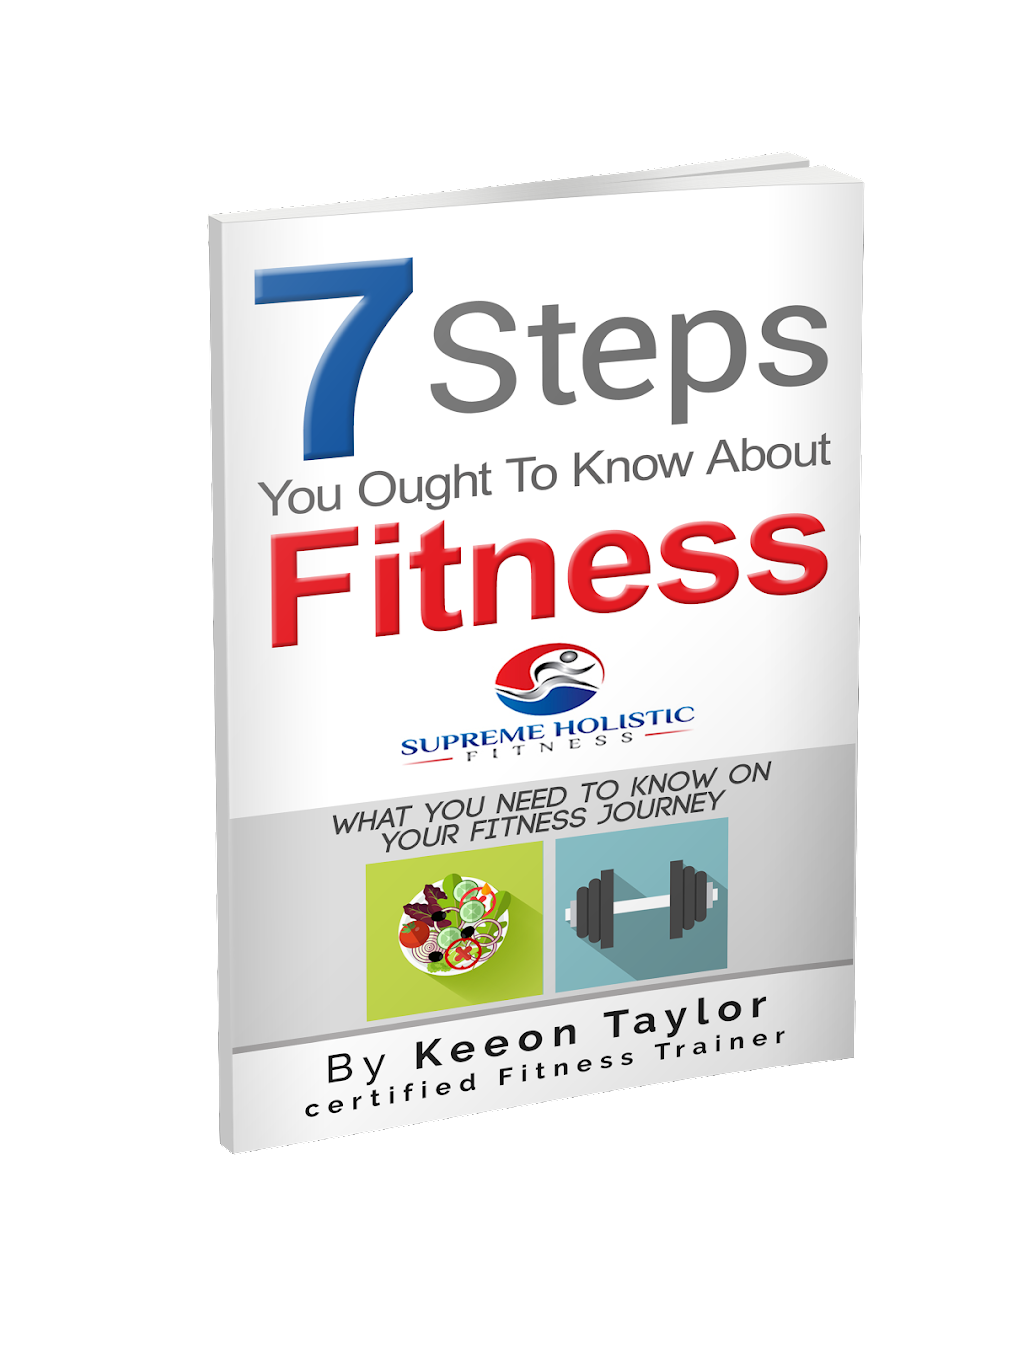 7 Steps You Ought To Know About Fitness